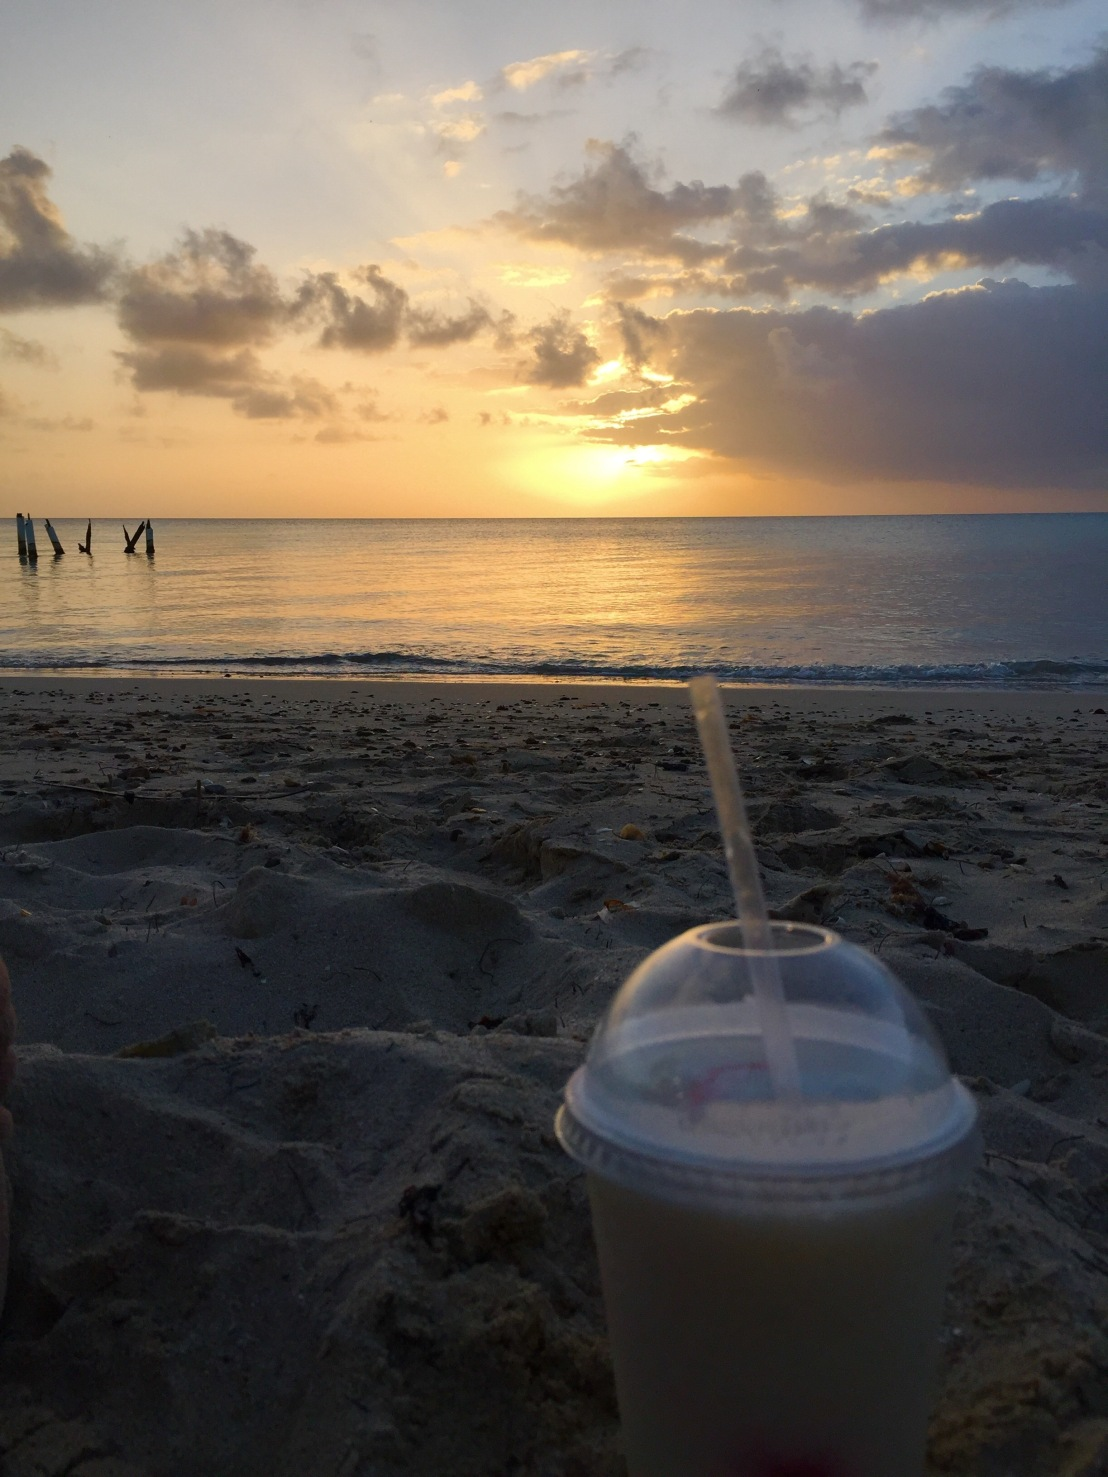 Piña colada and sunset